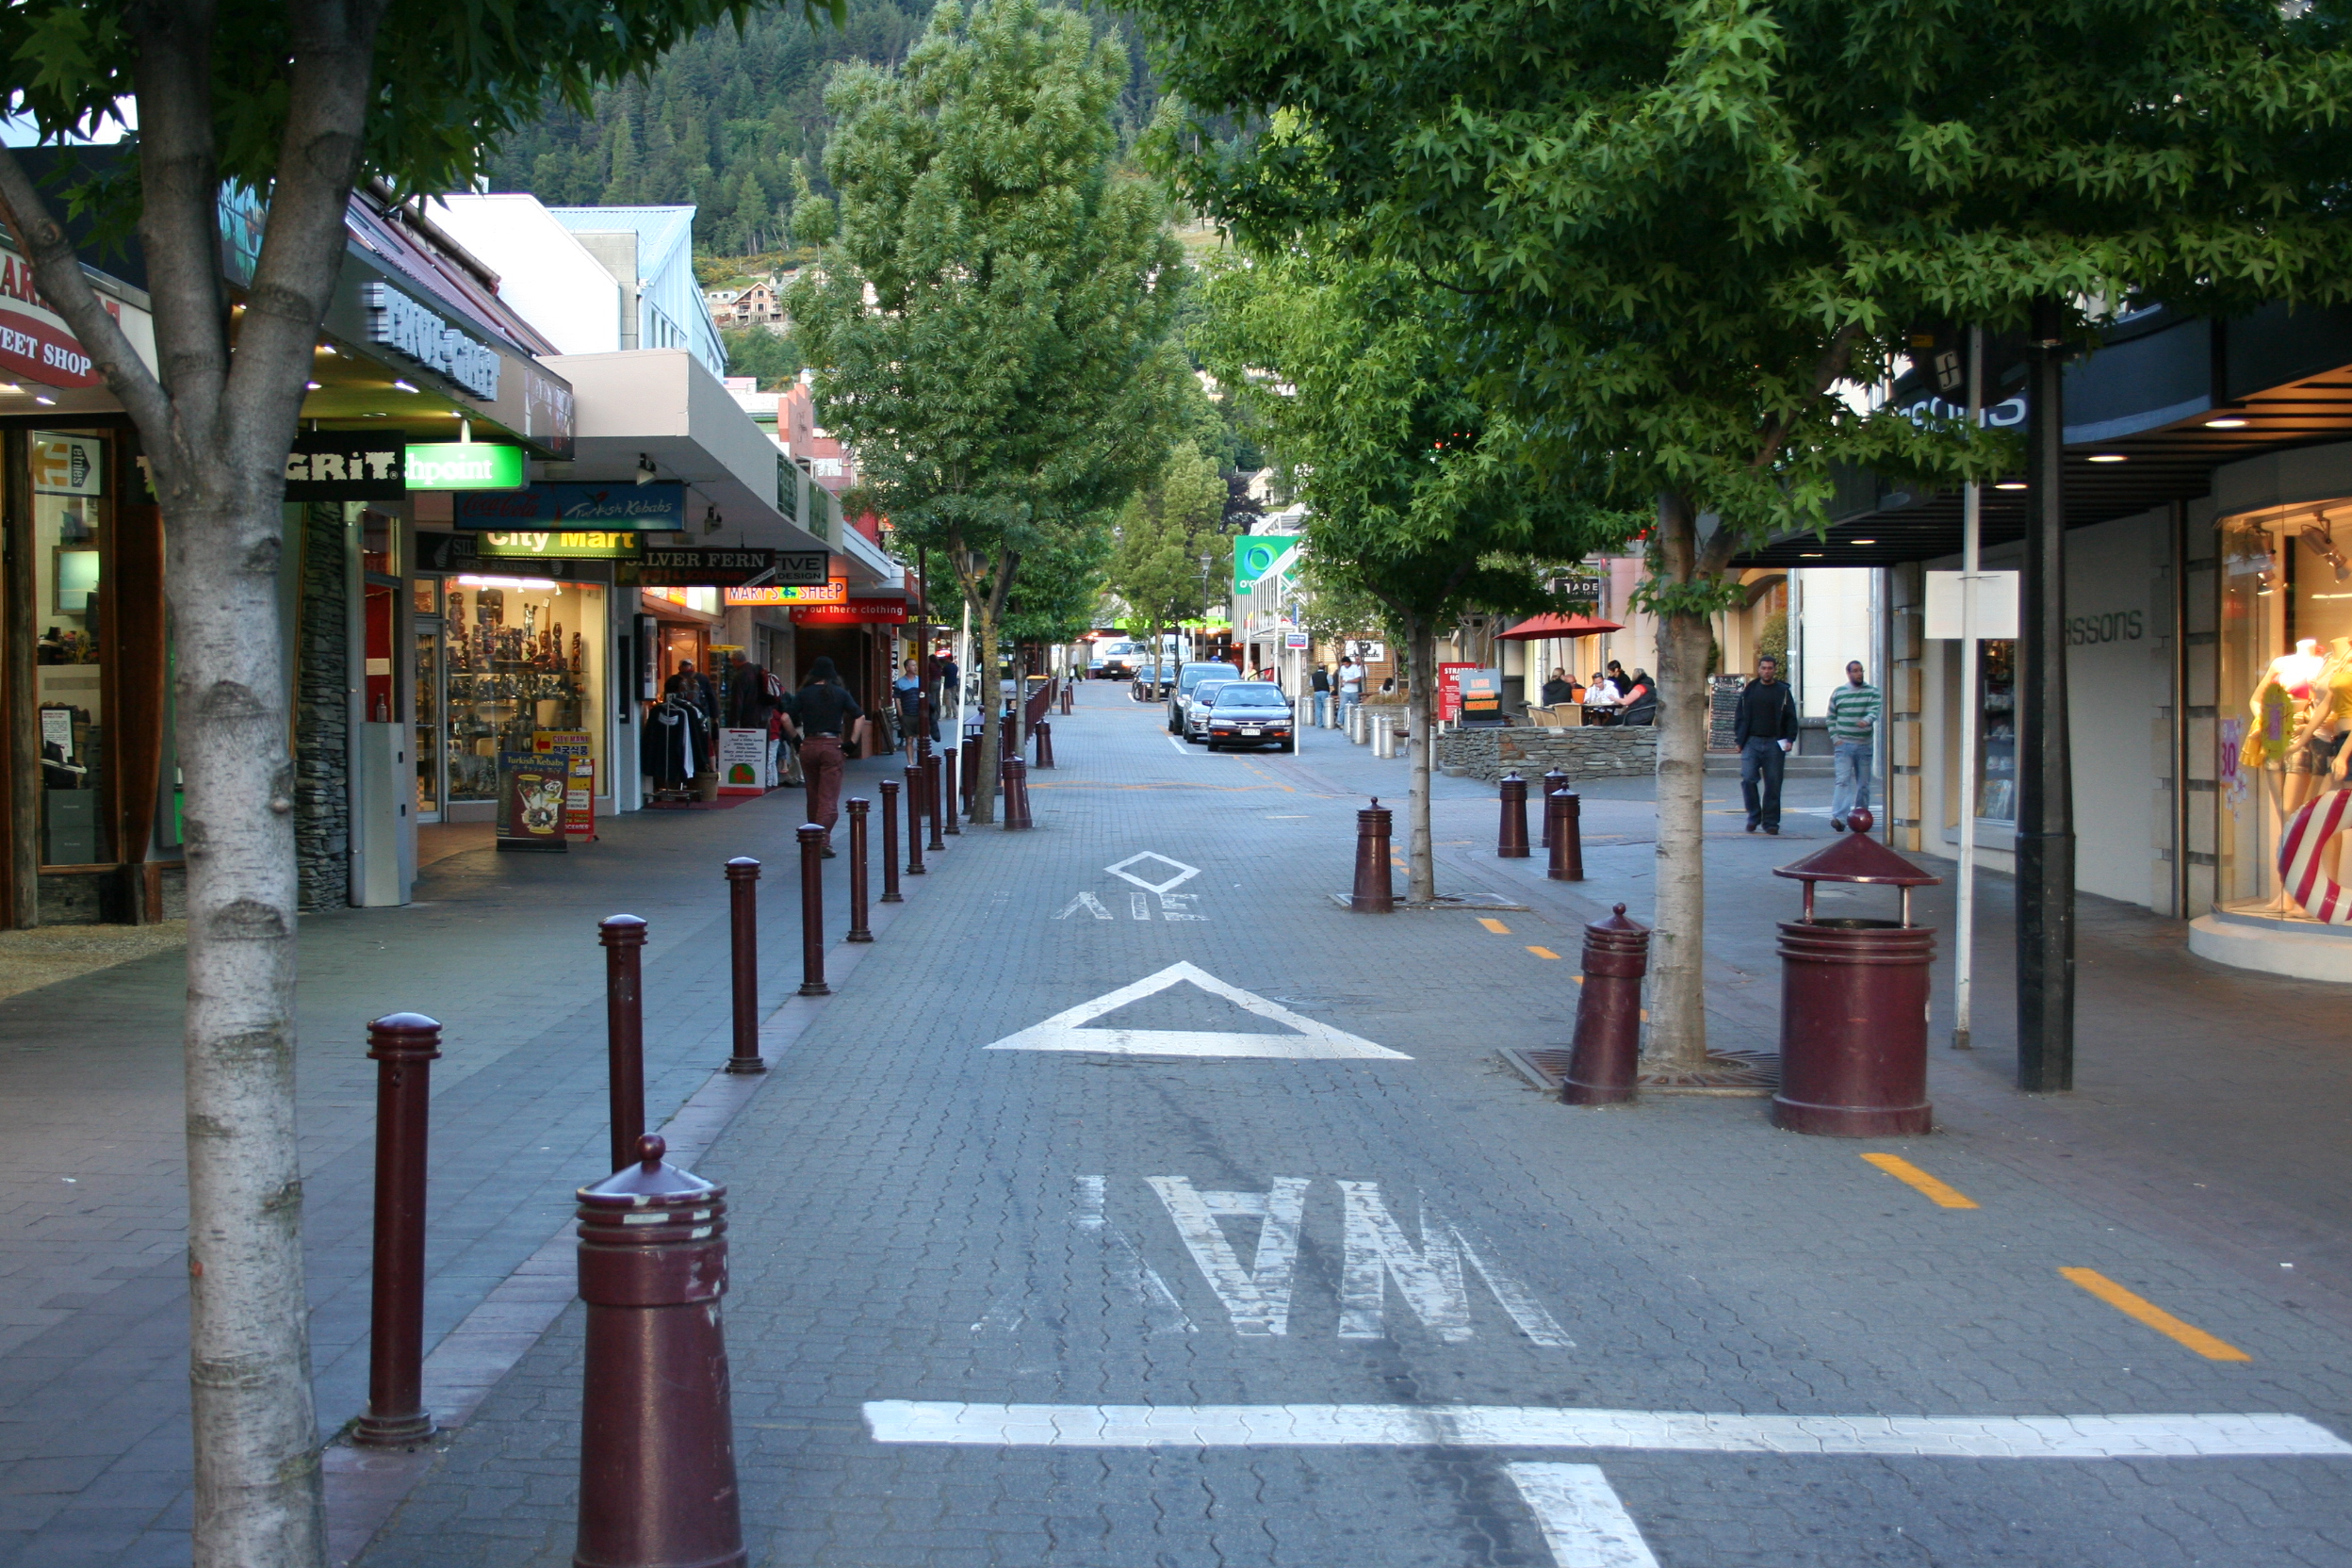 online dating queenstown nz car An accomplished new zealand pianist played in queenstown at the weekend on a rare 1955 steinway d concert grand piano thanks to the car-parking changes irk.